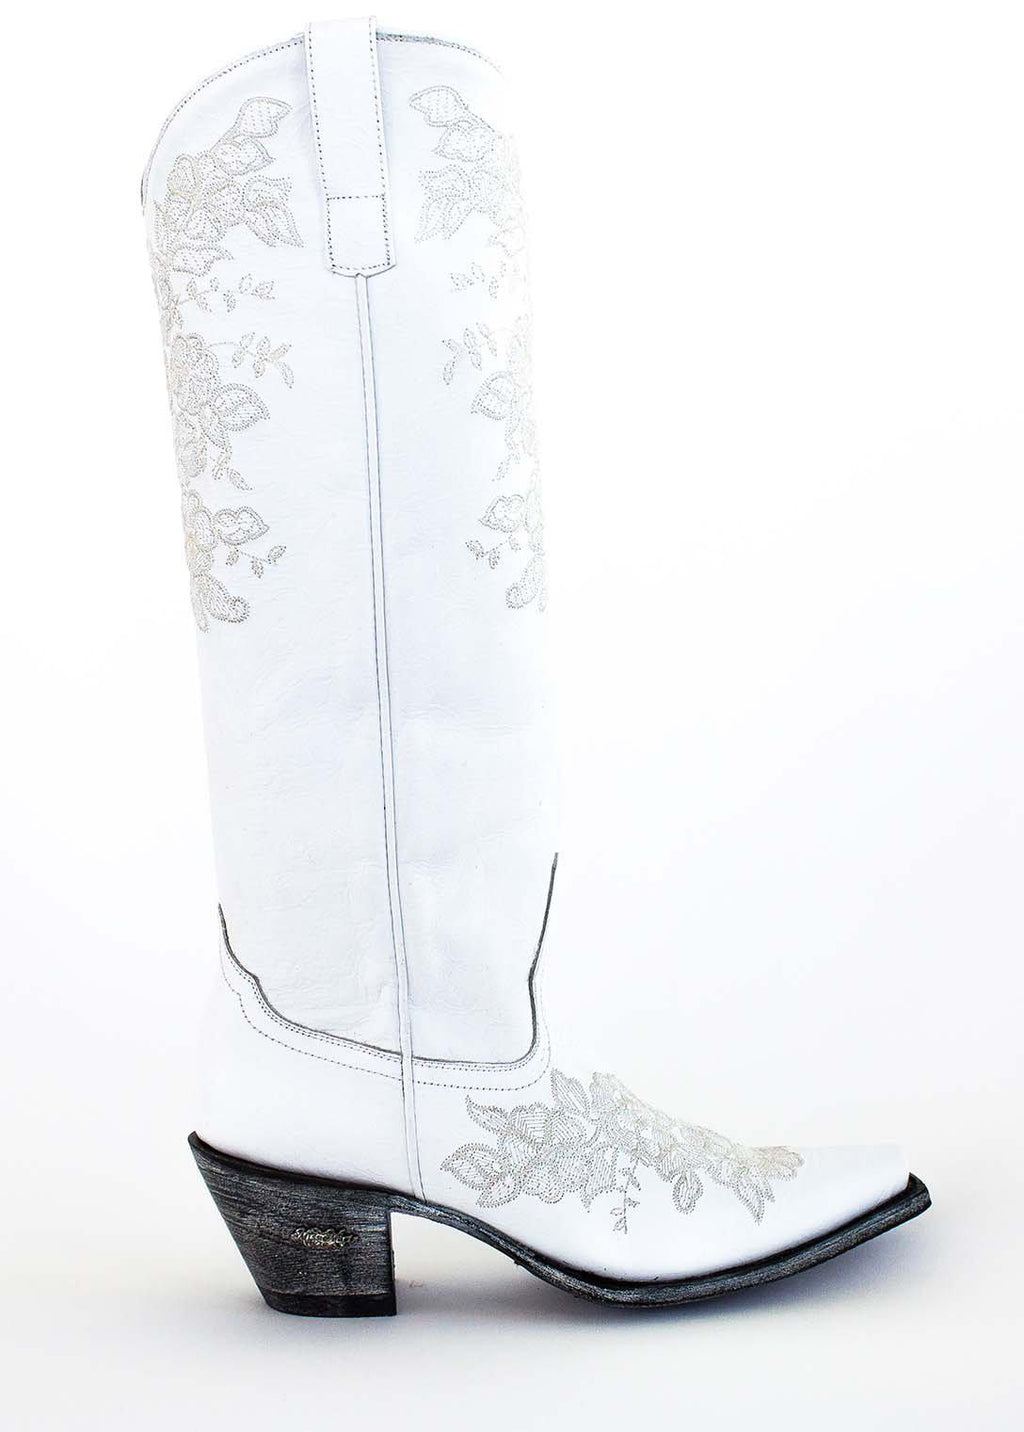 Miss Macie Boots Inspired Collection - Happily Ever After